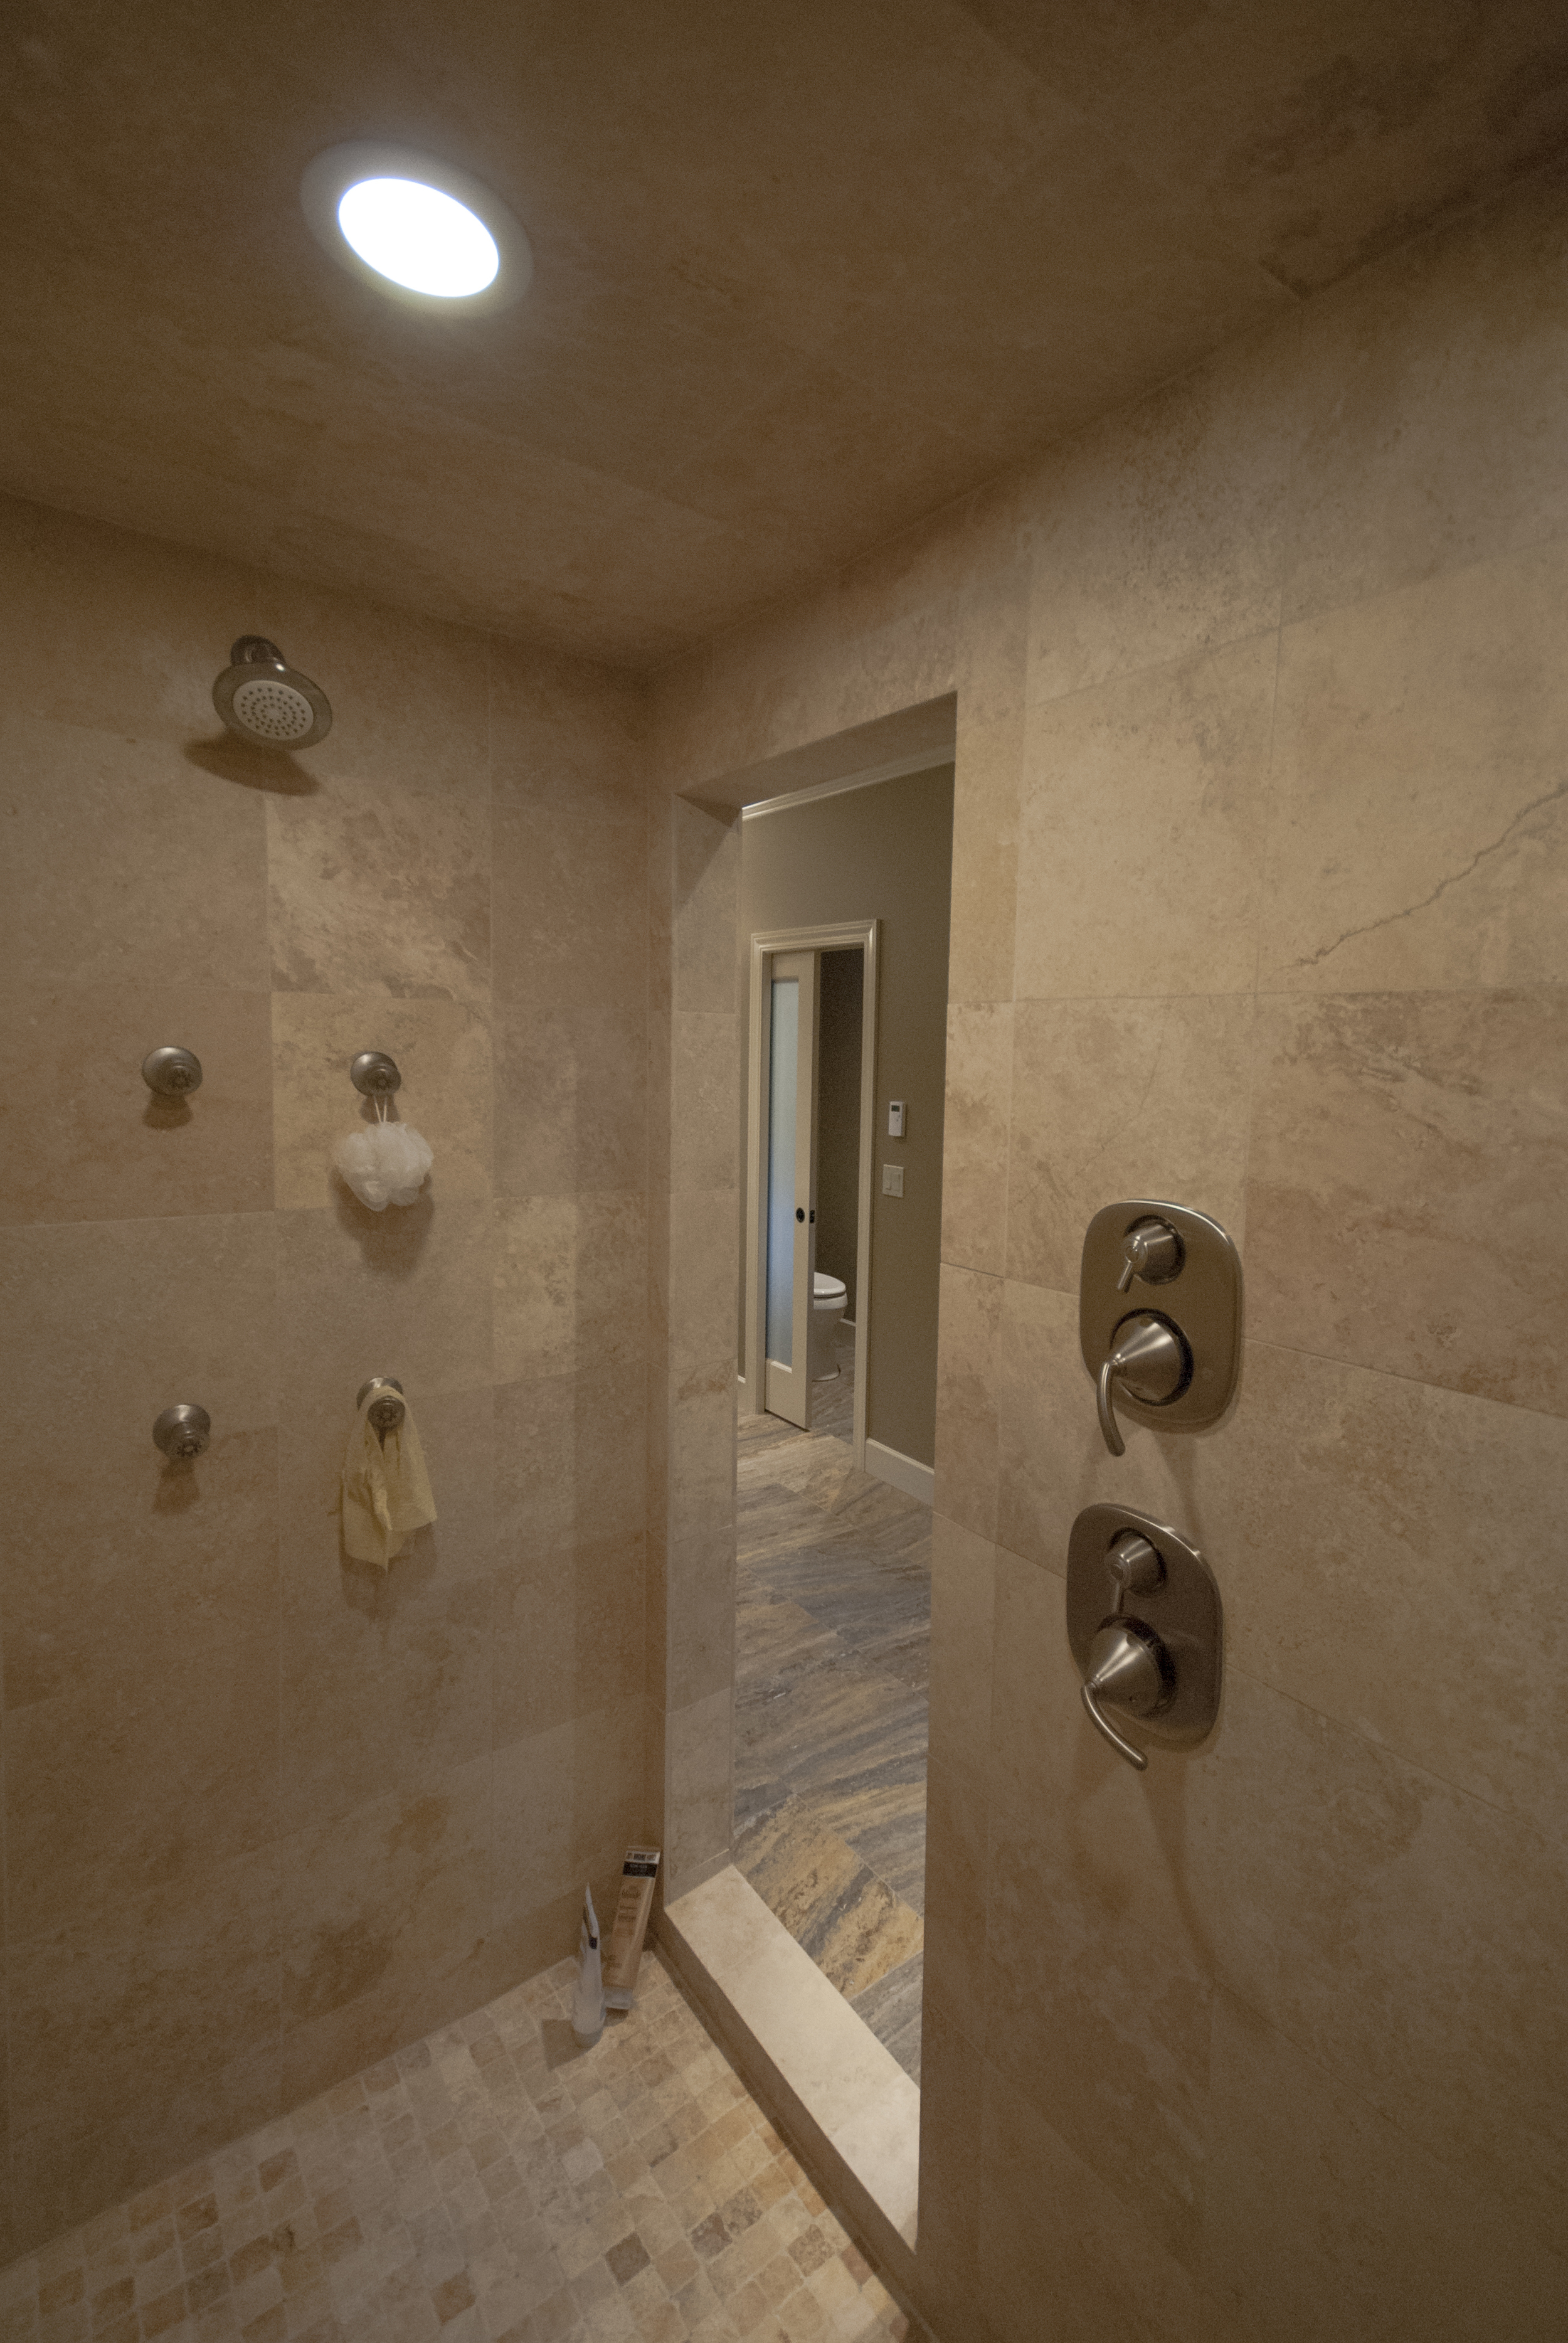 Inside the shower room is body sprays, two shower heads and a hand shower.